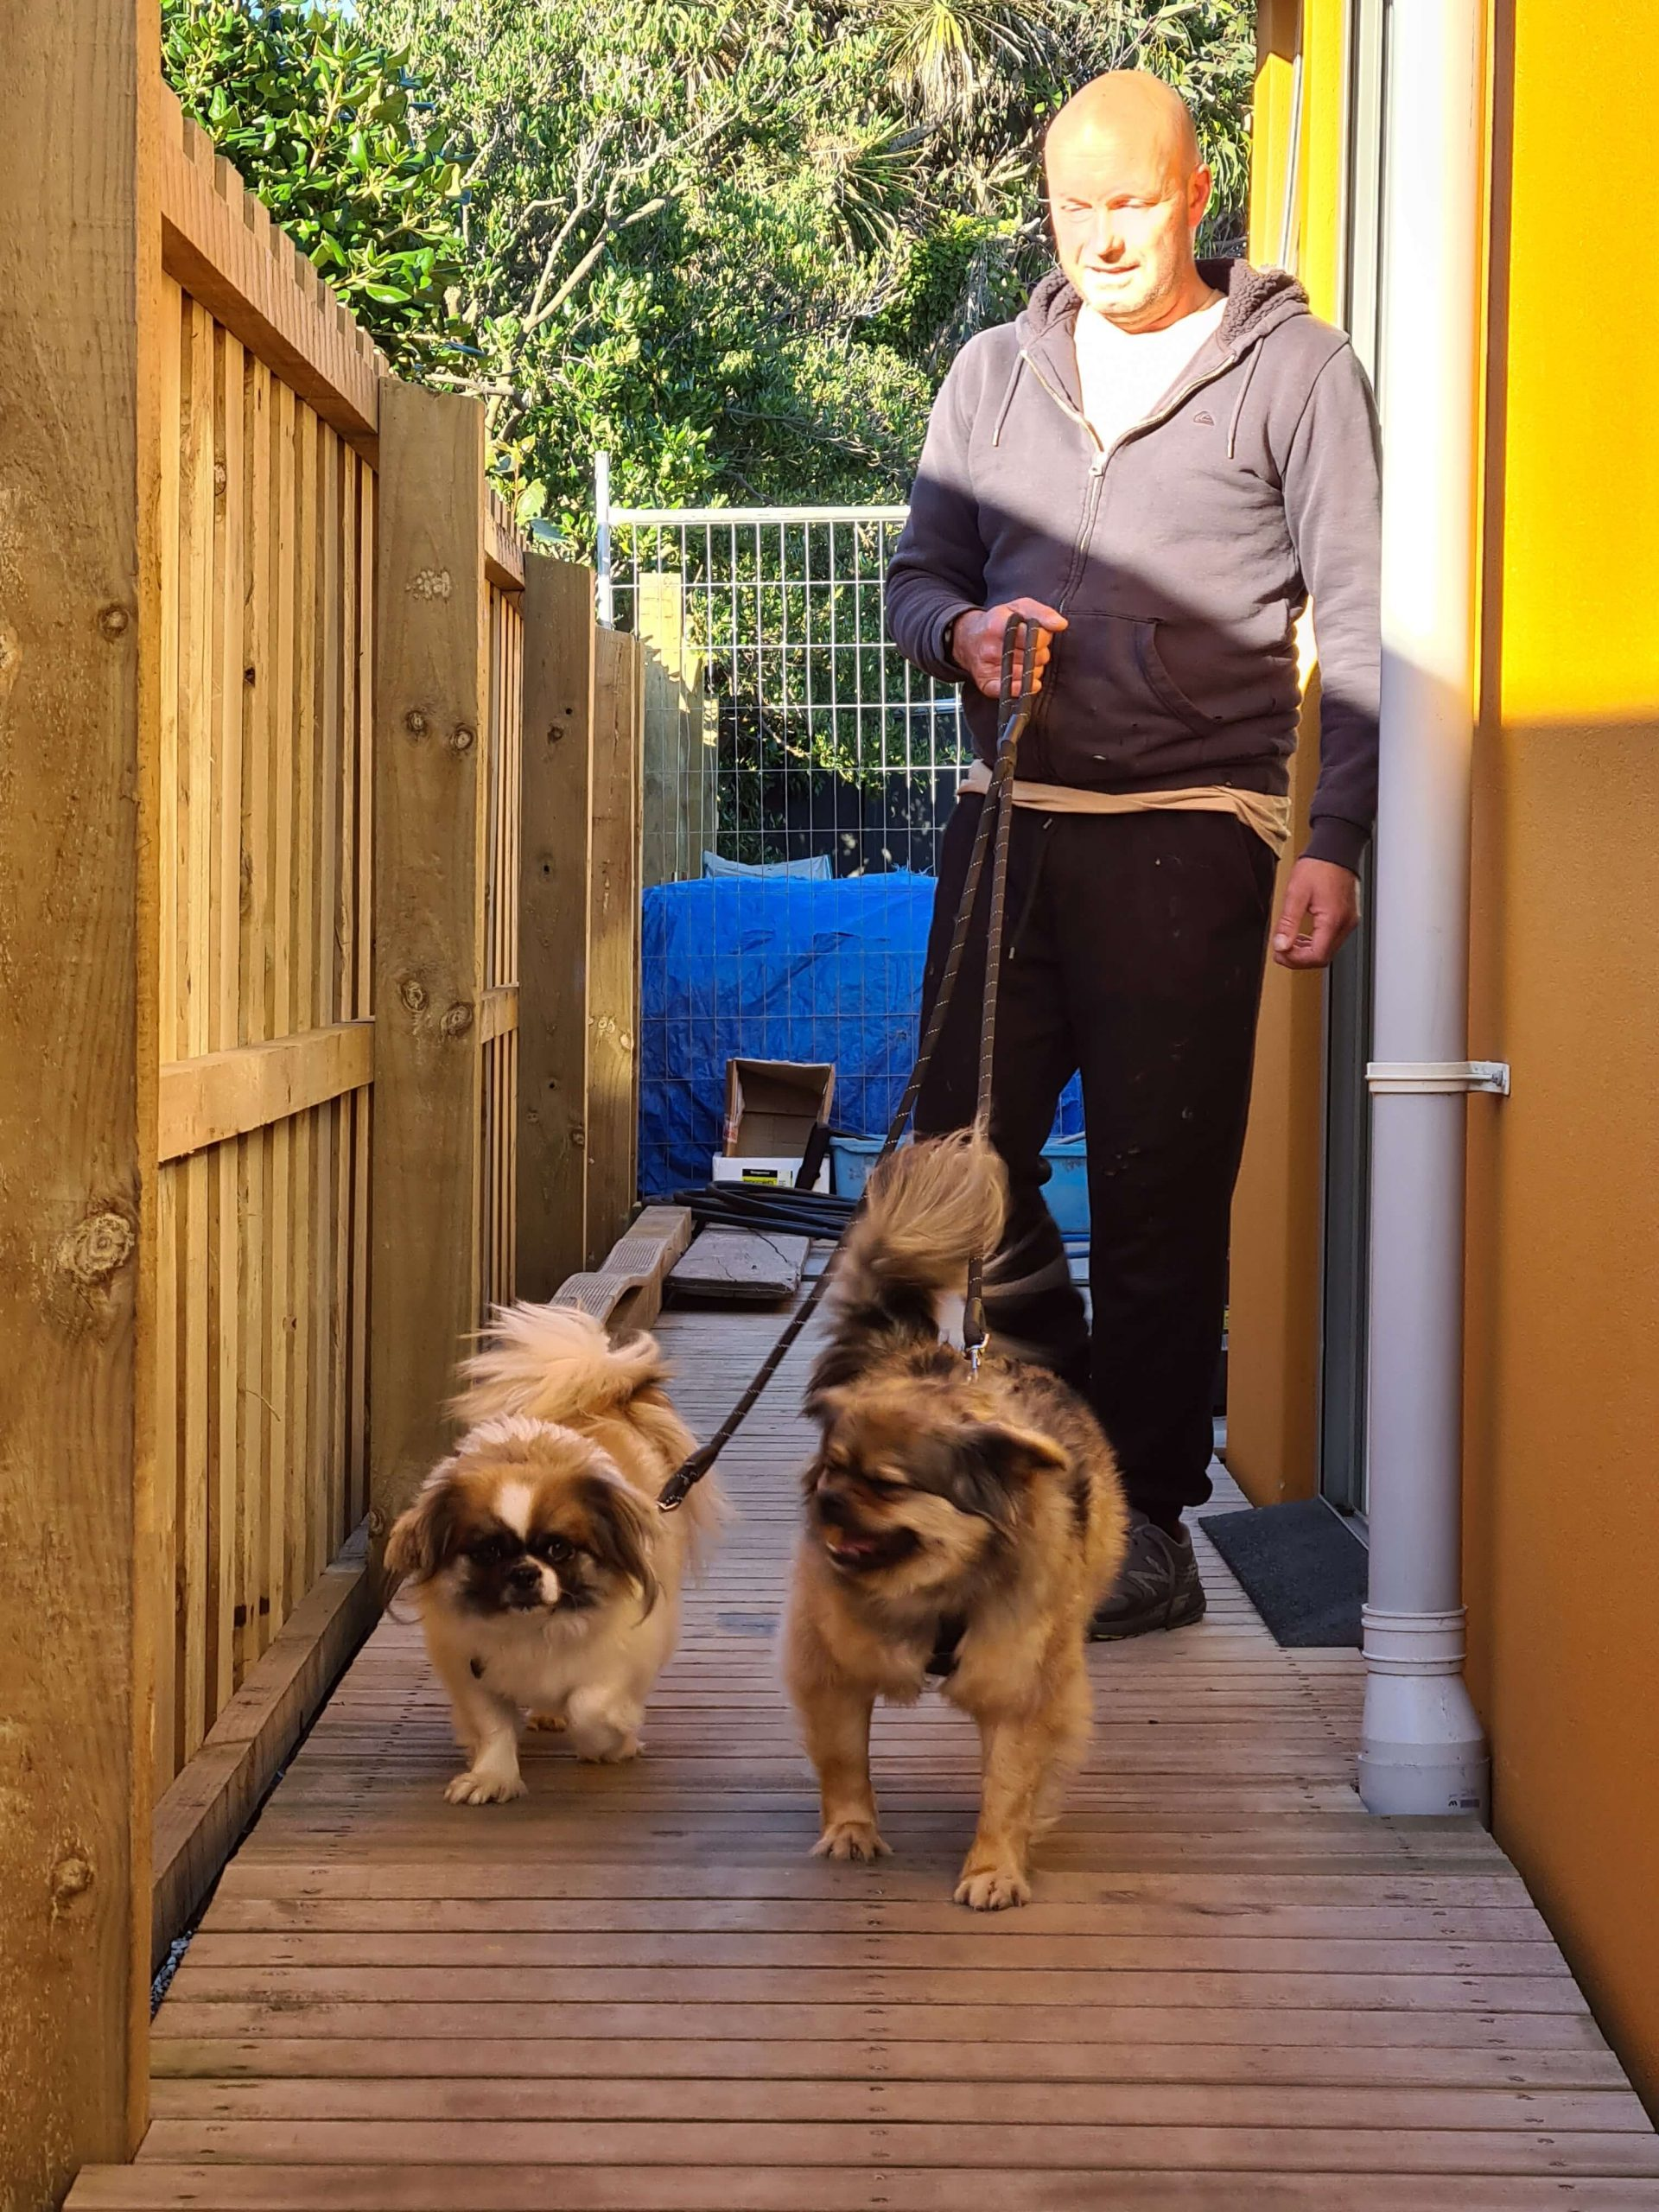 two small dogs on a leash with a male walking them